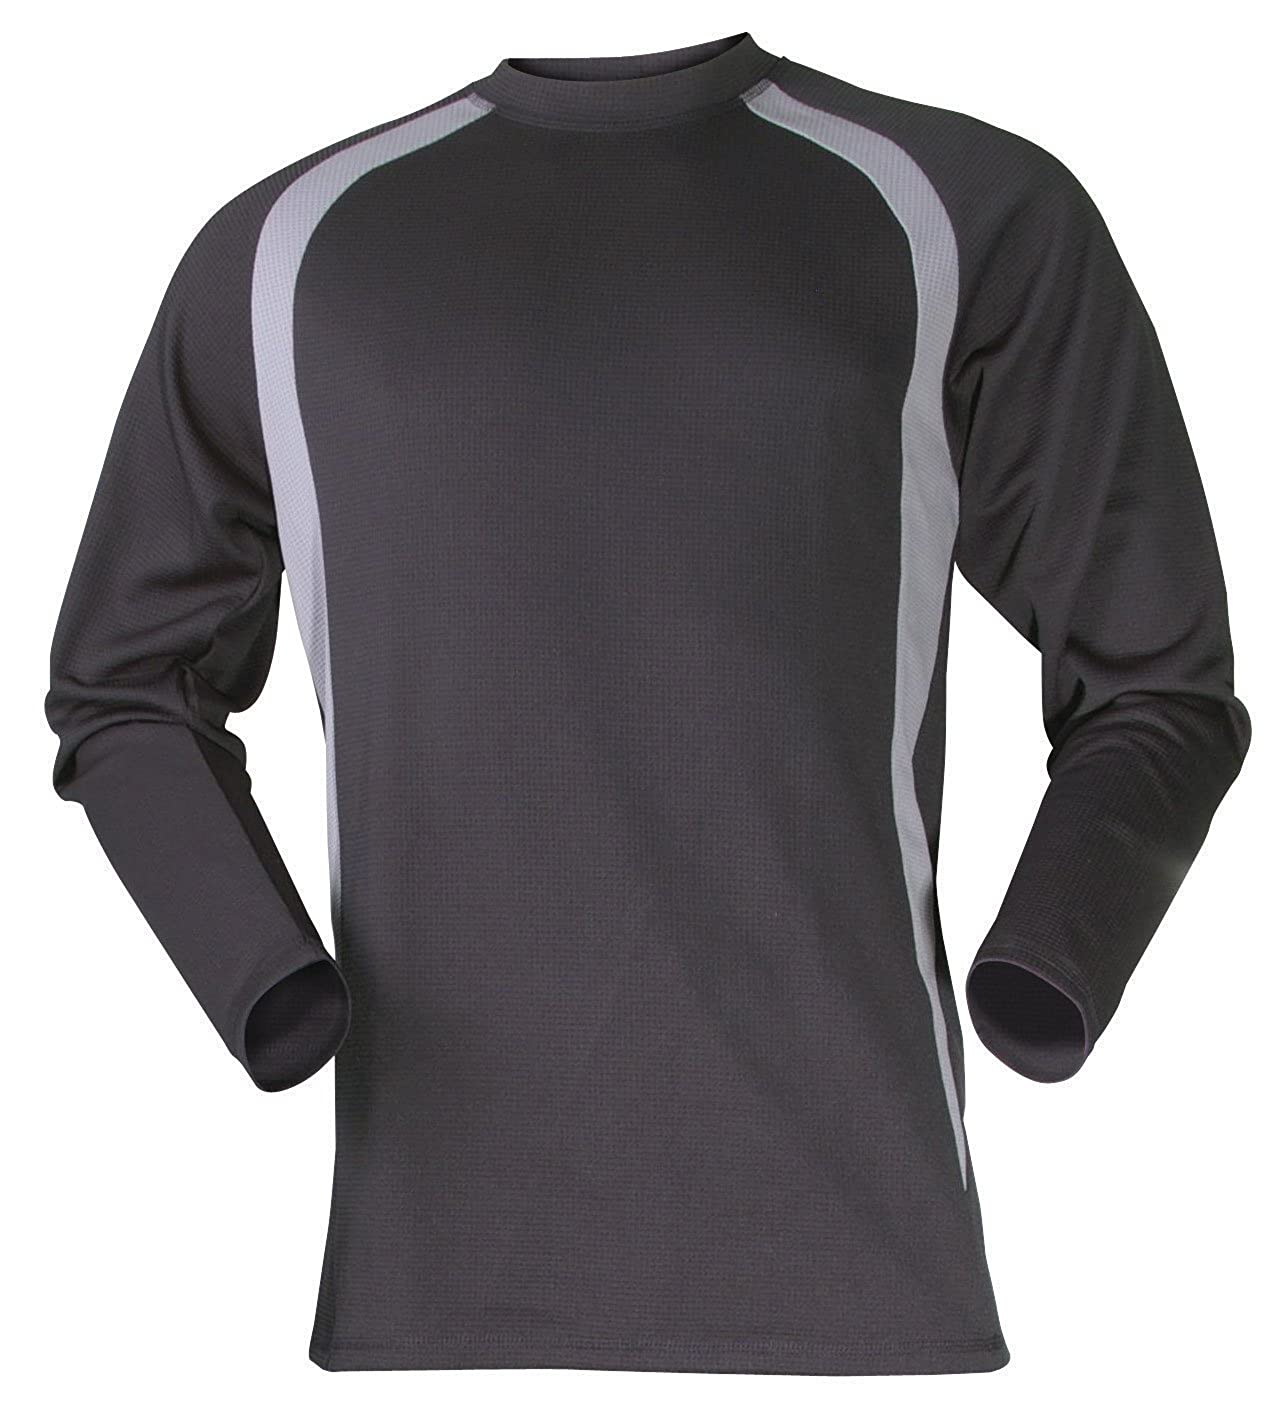 Blackrock Thermal Vest Base Layer Long Johns Two Tone All Sizes ROCO